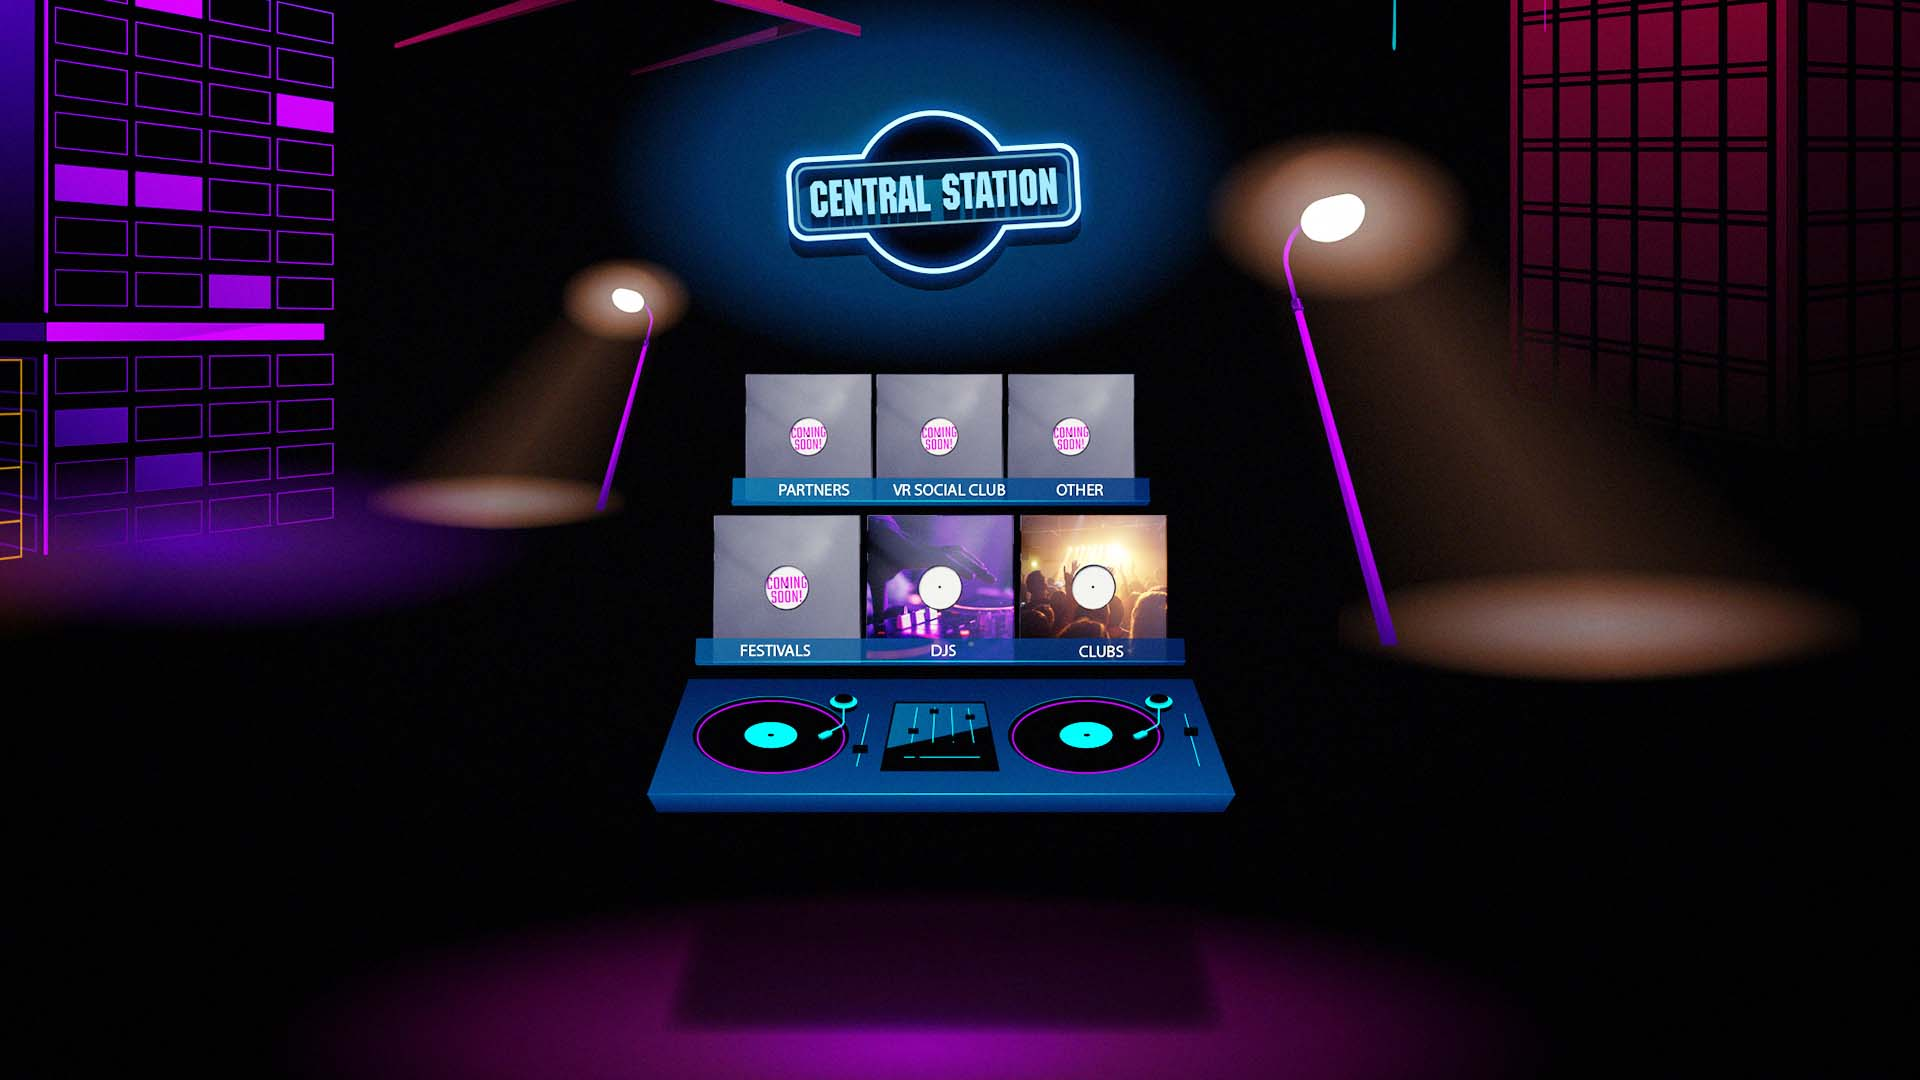 Central Station Records VR Interface